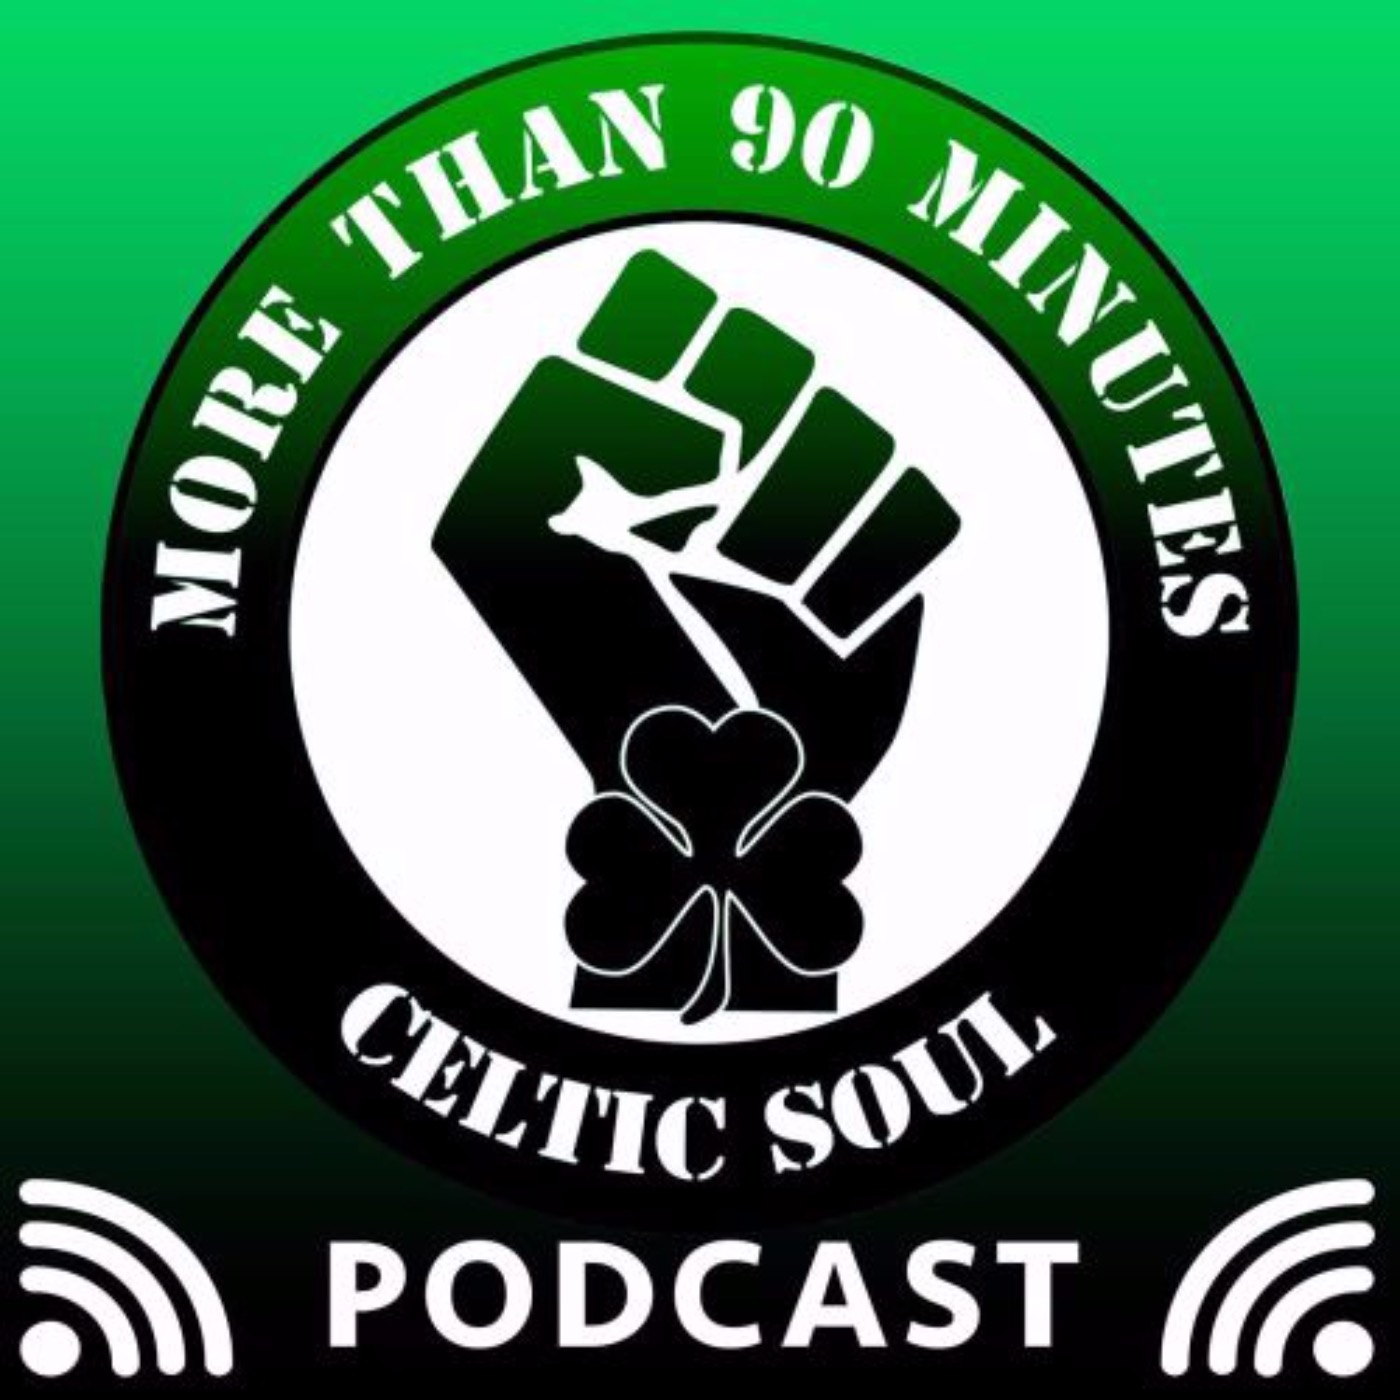 PHOTOS – CELTIC SOUL